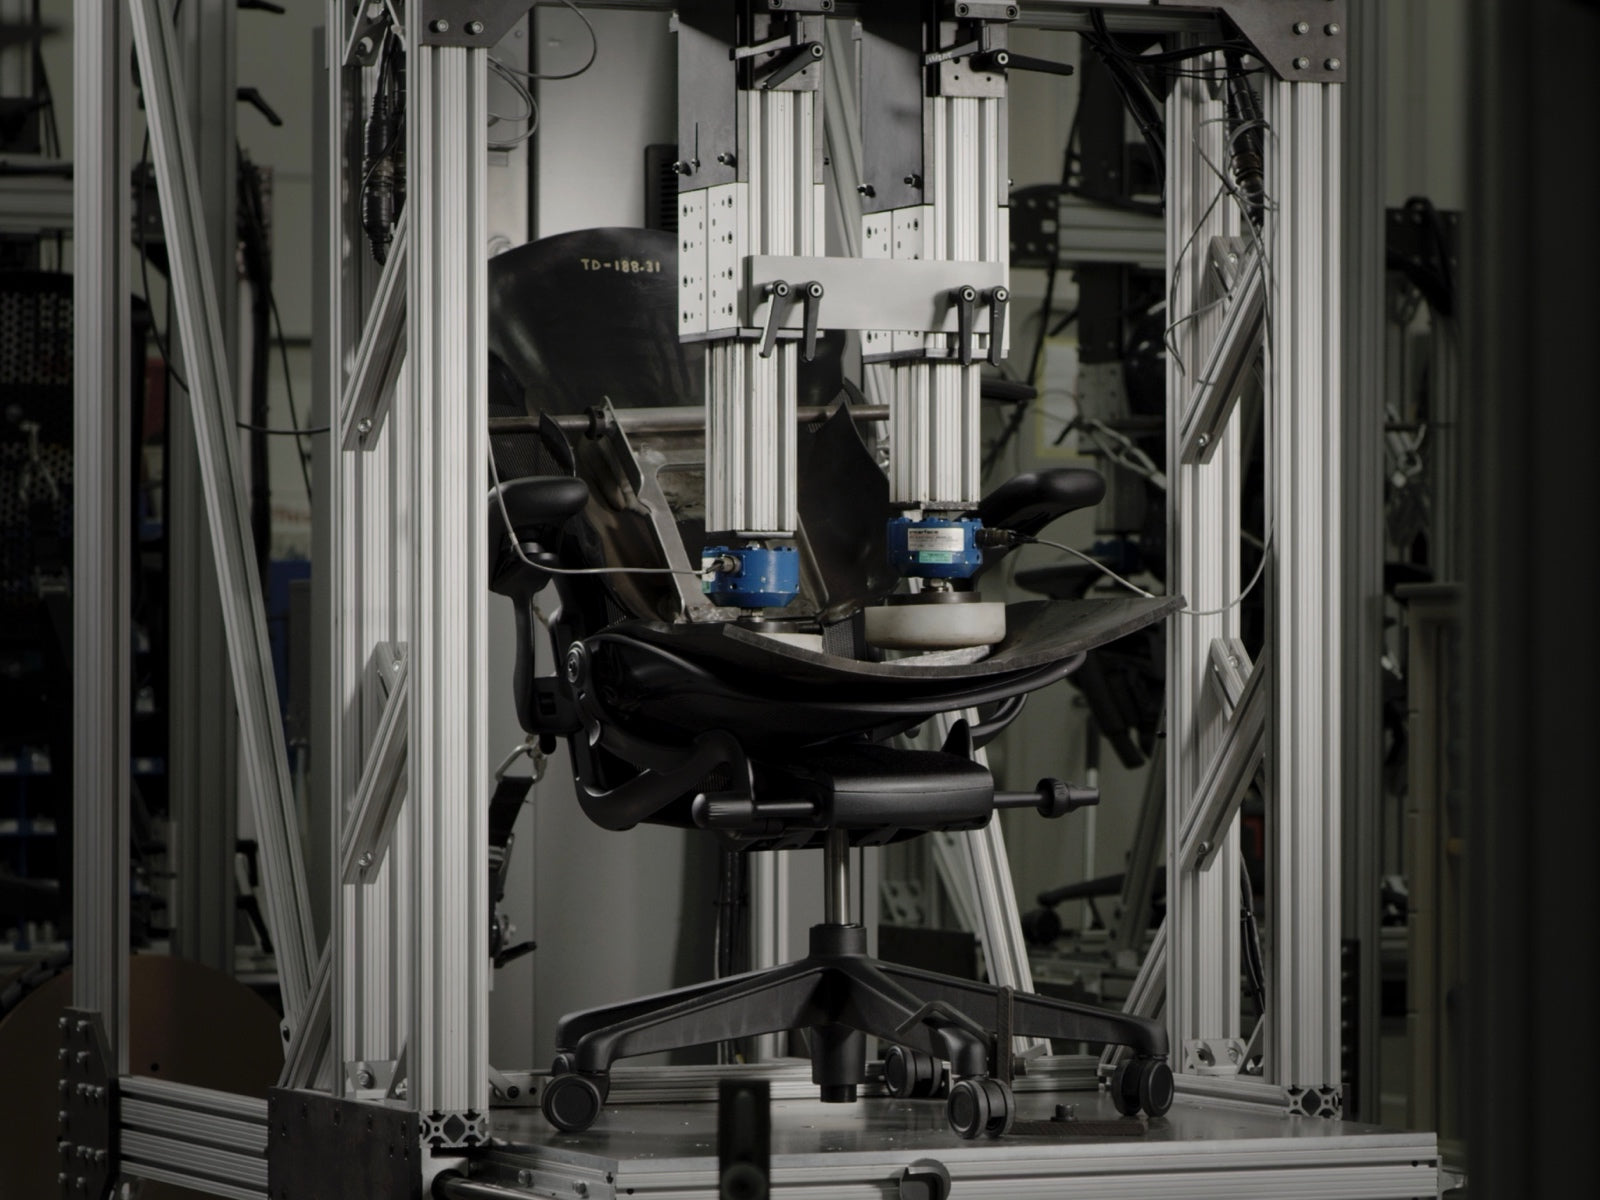 An Embody Gaming Chair, shown from the side, in a testing machine at the Herman Miller manufacturing site.